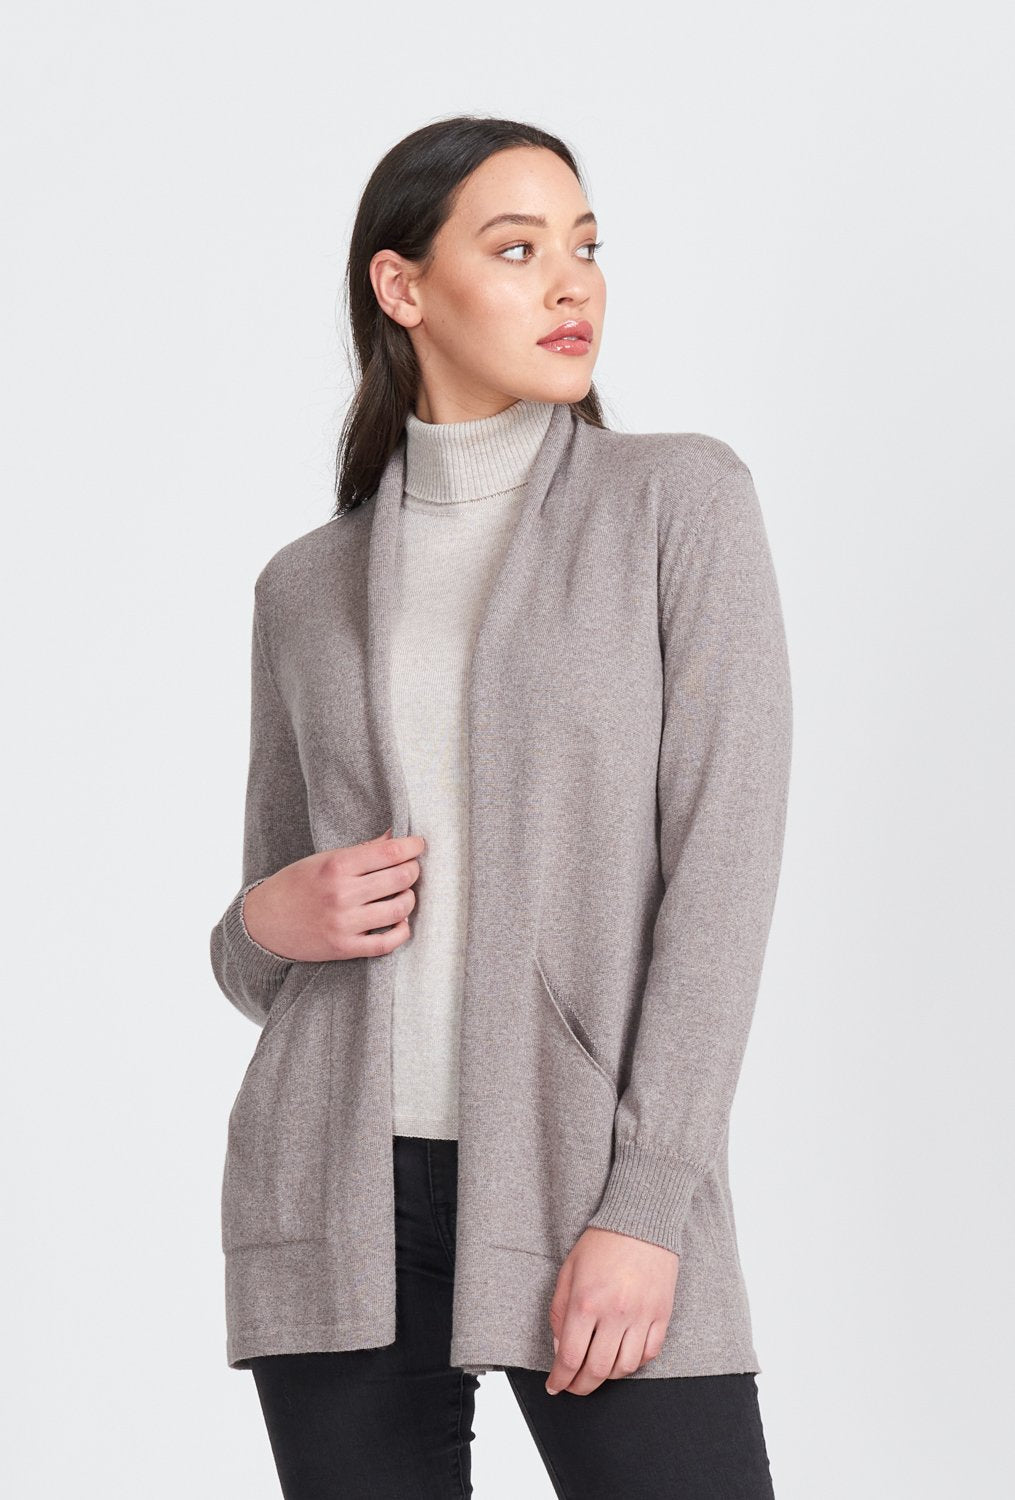 L/S OPEN FRONT LONG CARDIGAN - Woolshed Gallery